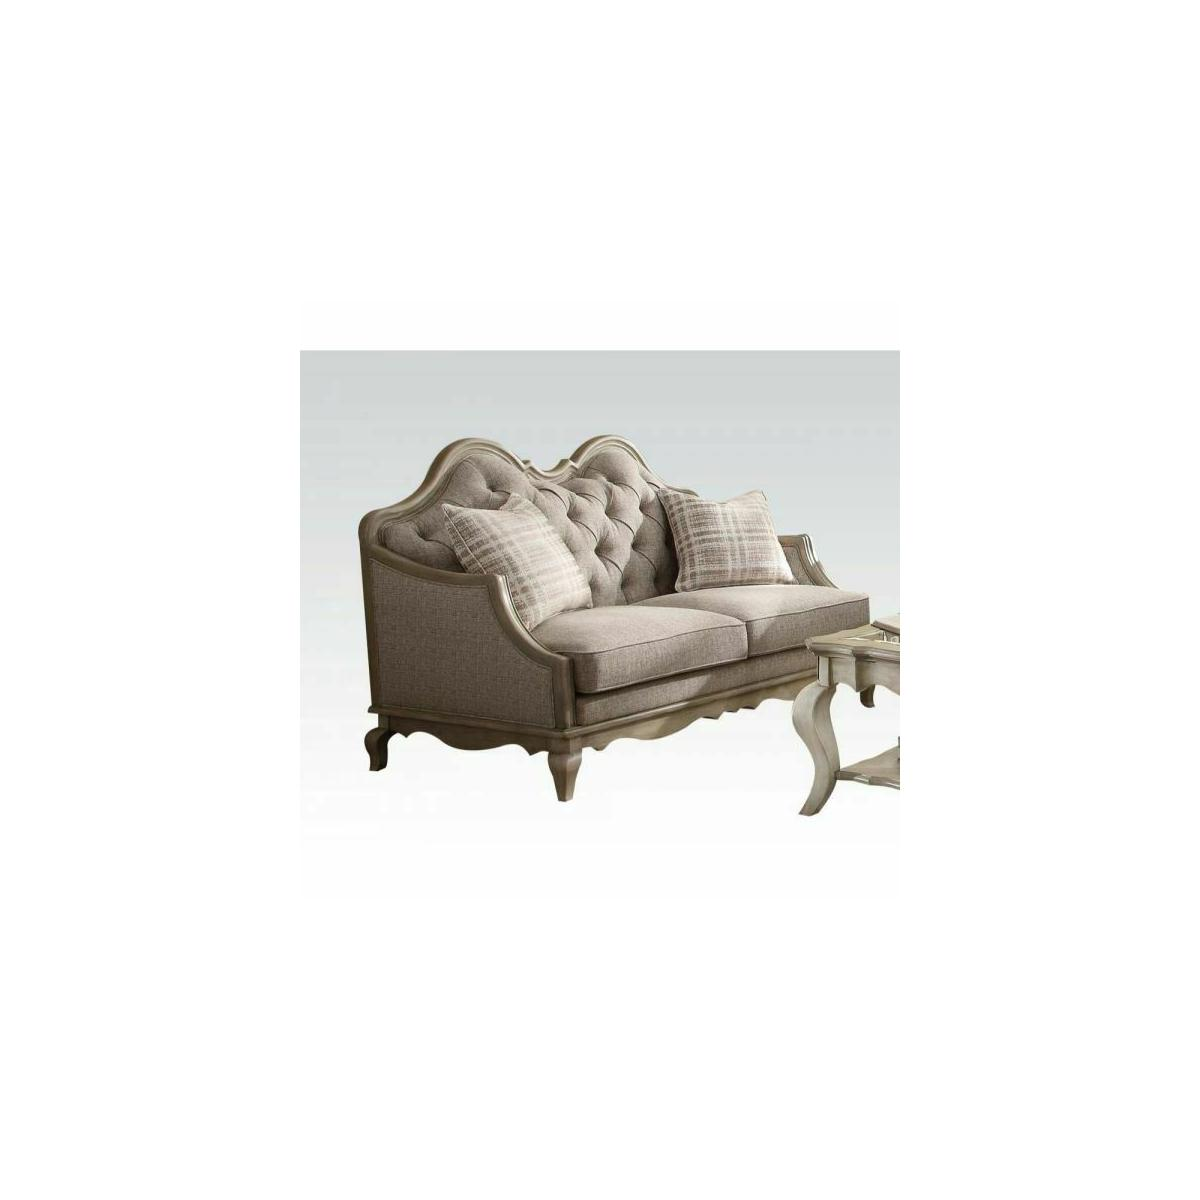 ACME Chelmsford Loveseat w/2 Pillows - 56051 - Beige Fabric & Antique Taupe